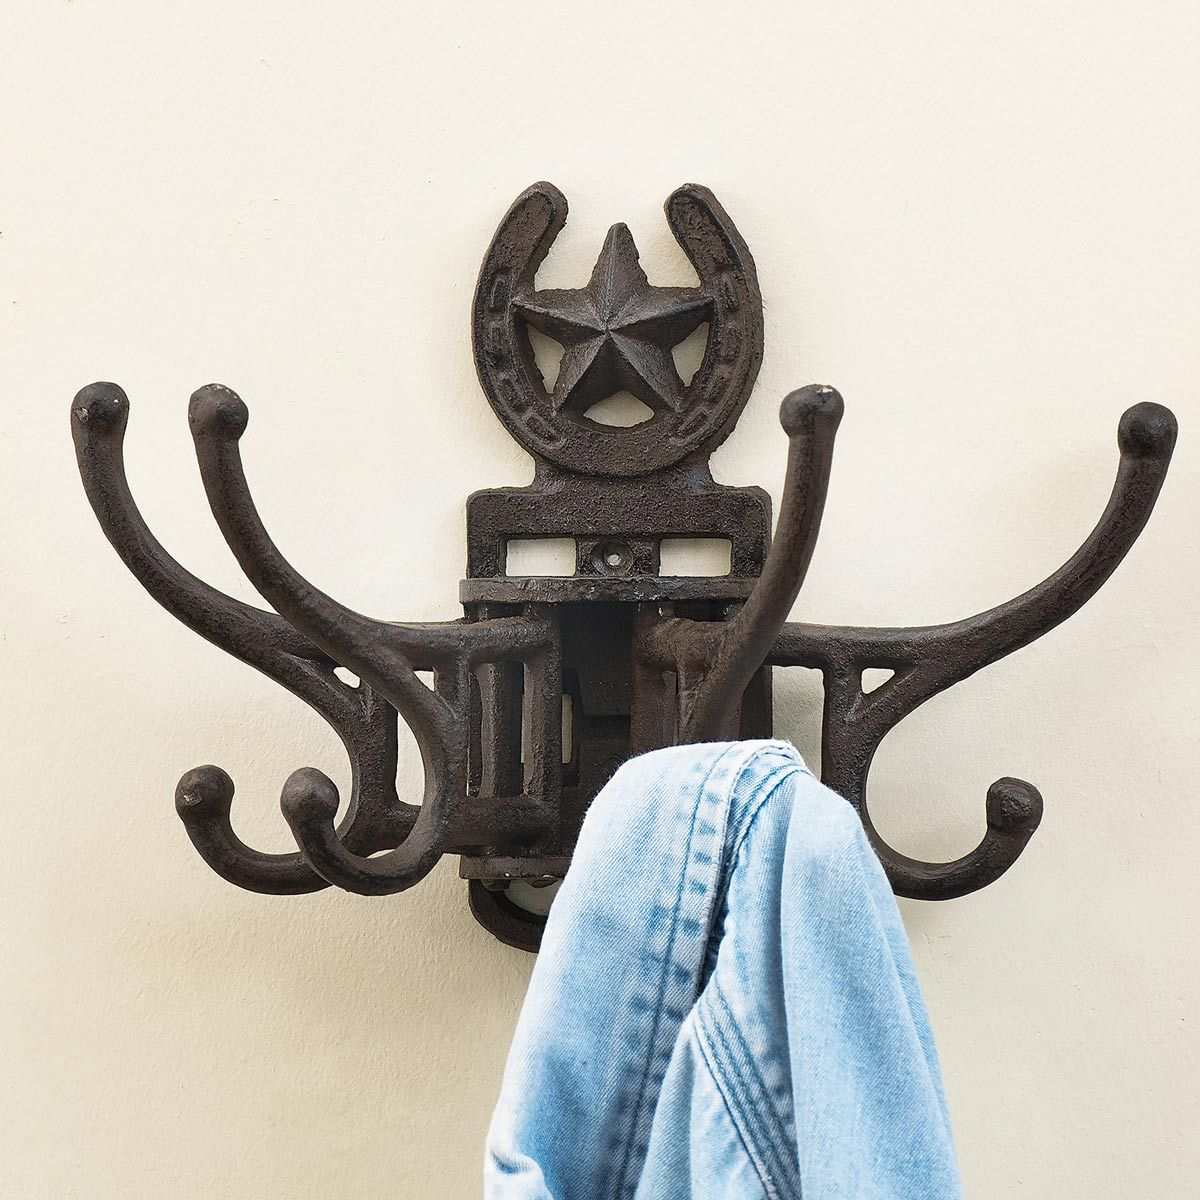 Lone Star Cast Iron Coat Hanger